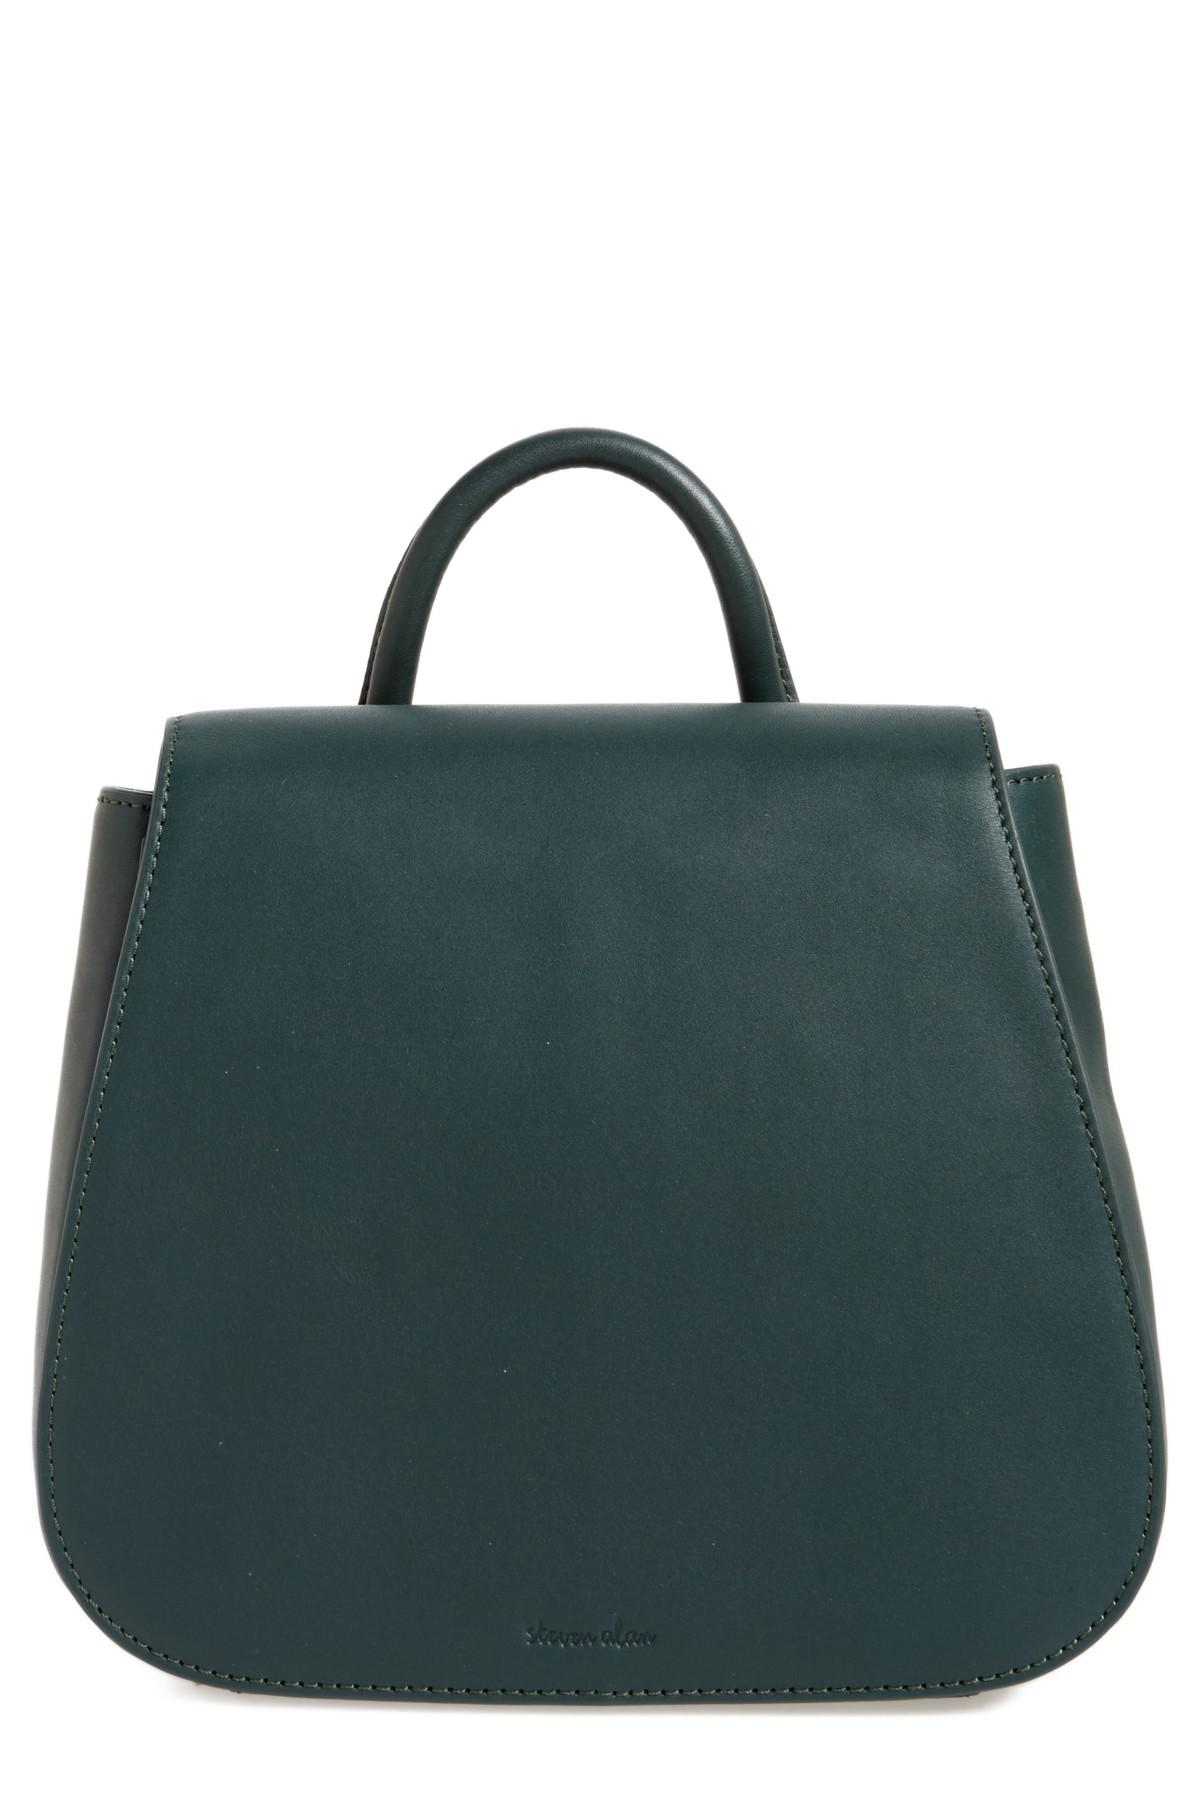 8b093b3db85 Steven Alan Small Kate Convertible Leather Backpack in Green - Lyst